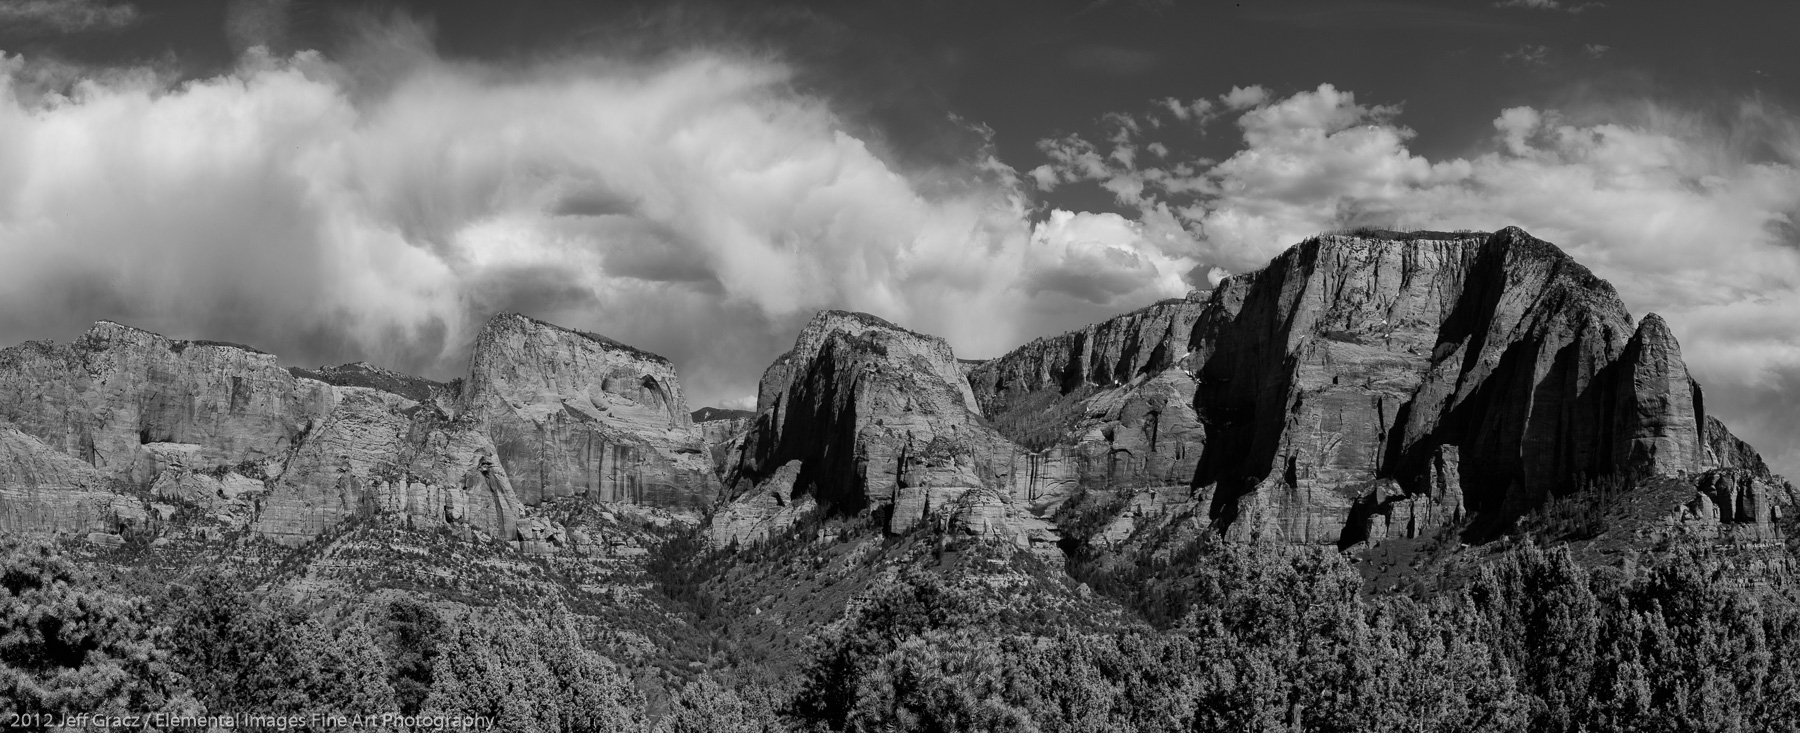 The Kolob Canyons | Zion National Park | UT | USA - © 2012 Jeff Gracz / Elemental Images Fine Art Photography - All Rights Reserved Worldwide